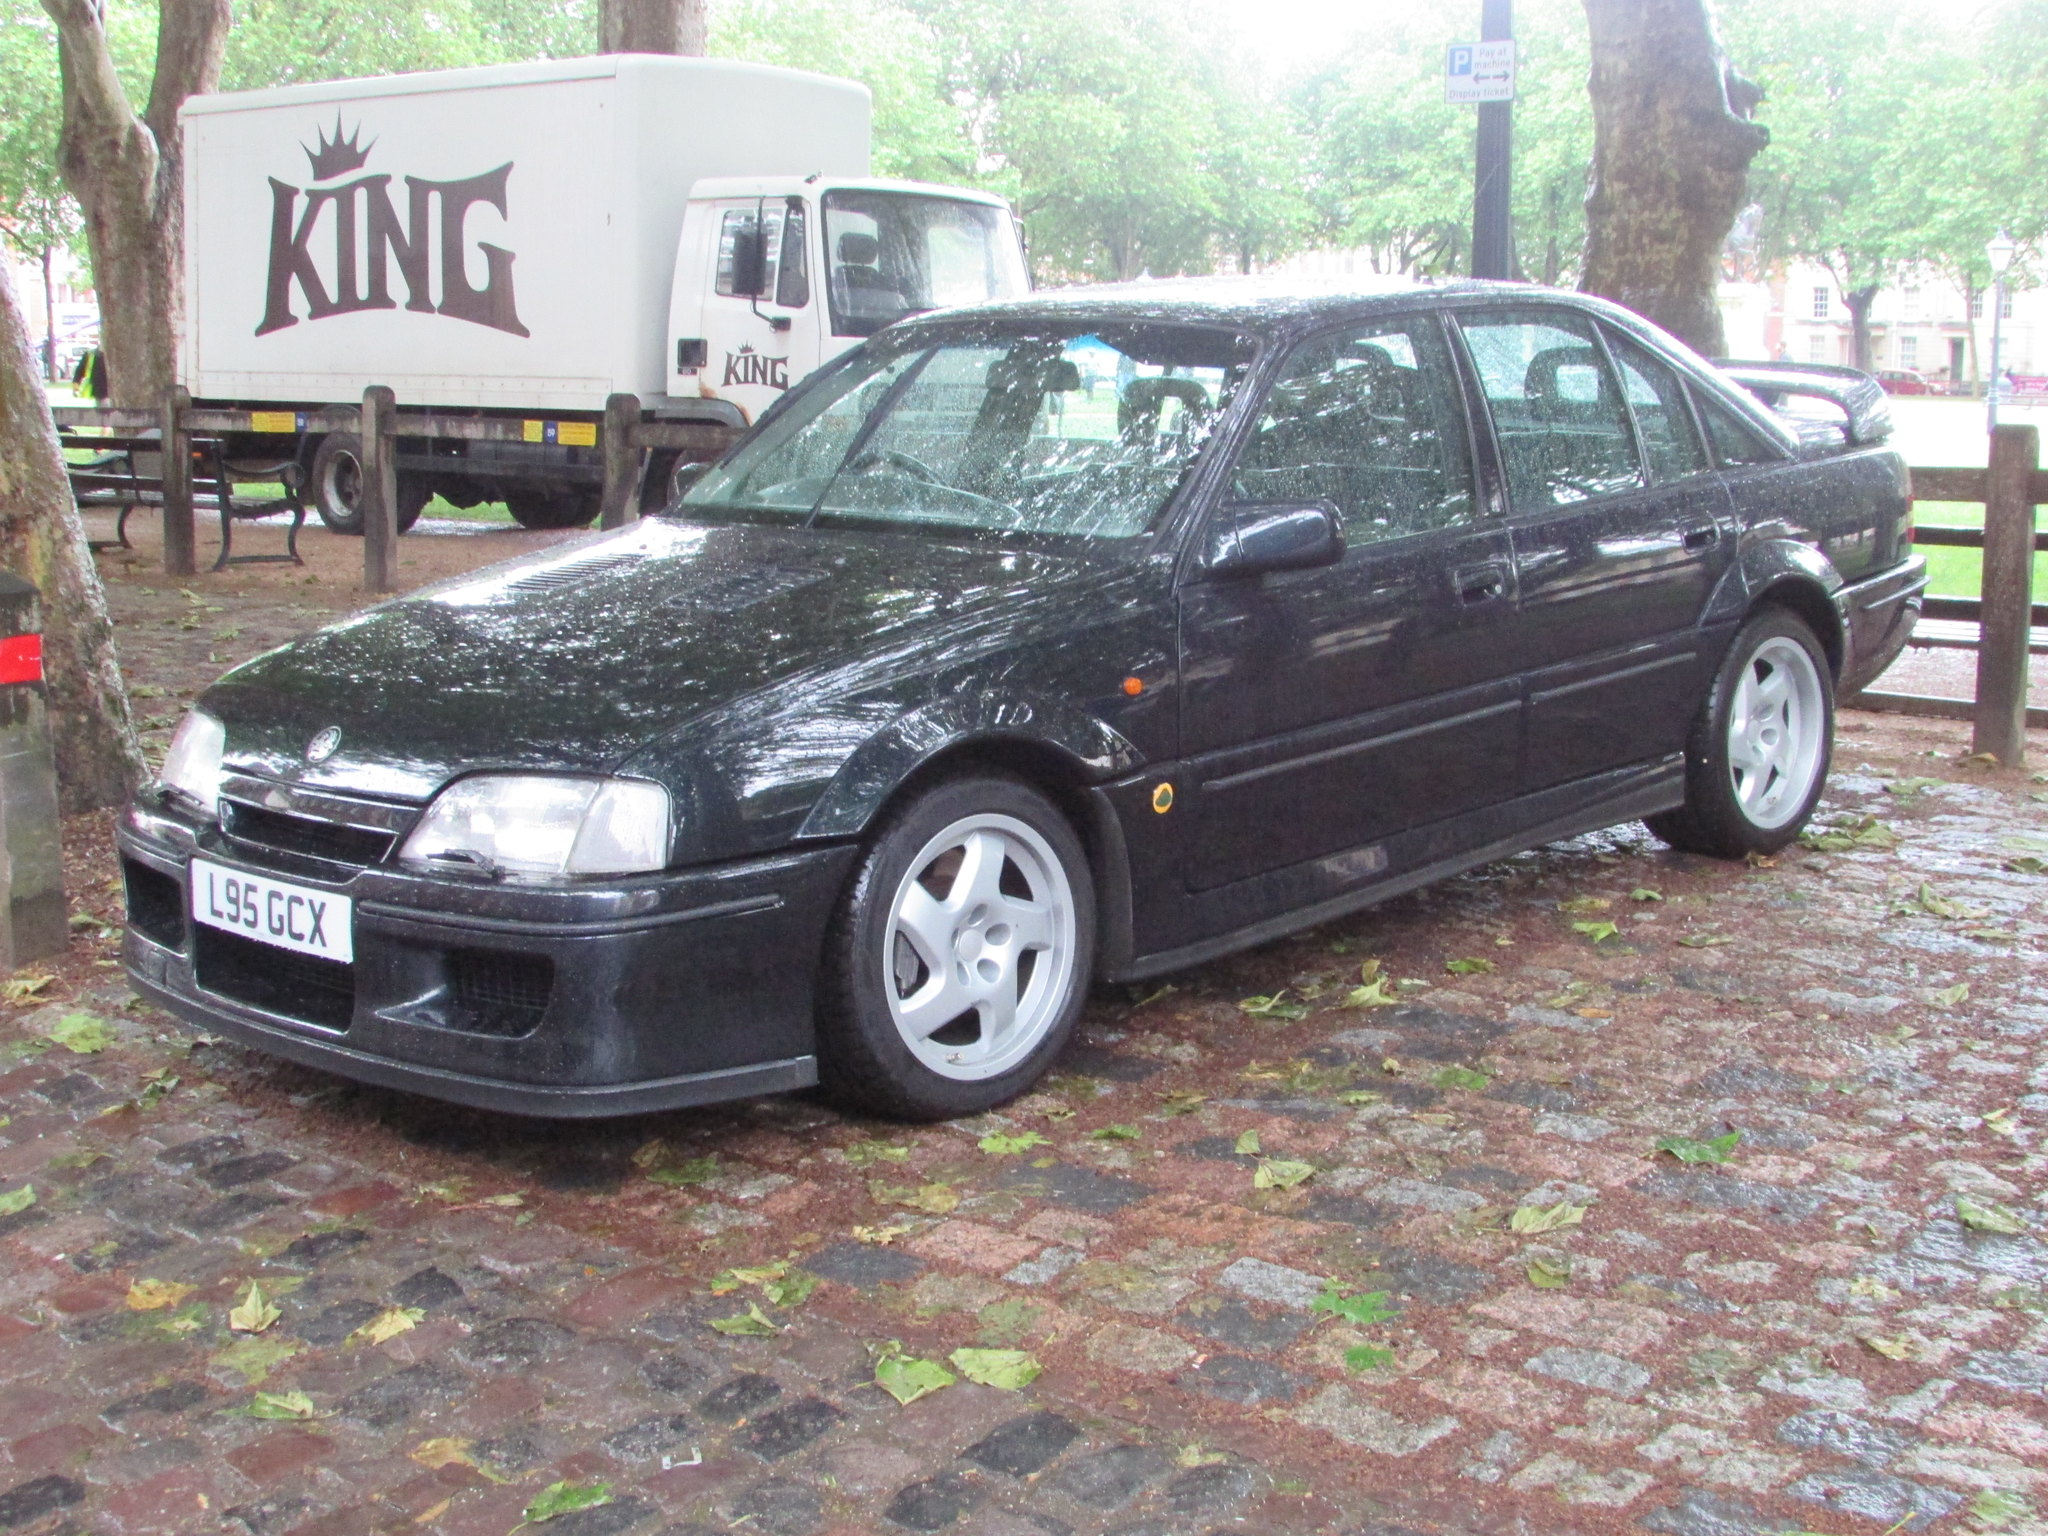 27344765870_50871e9aa5_k Breathtaking Lotus Carlton for Sale Uk Cars Trend